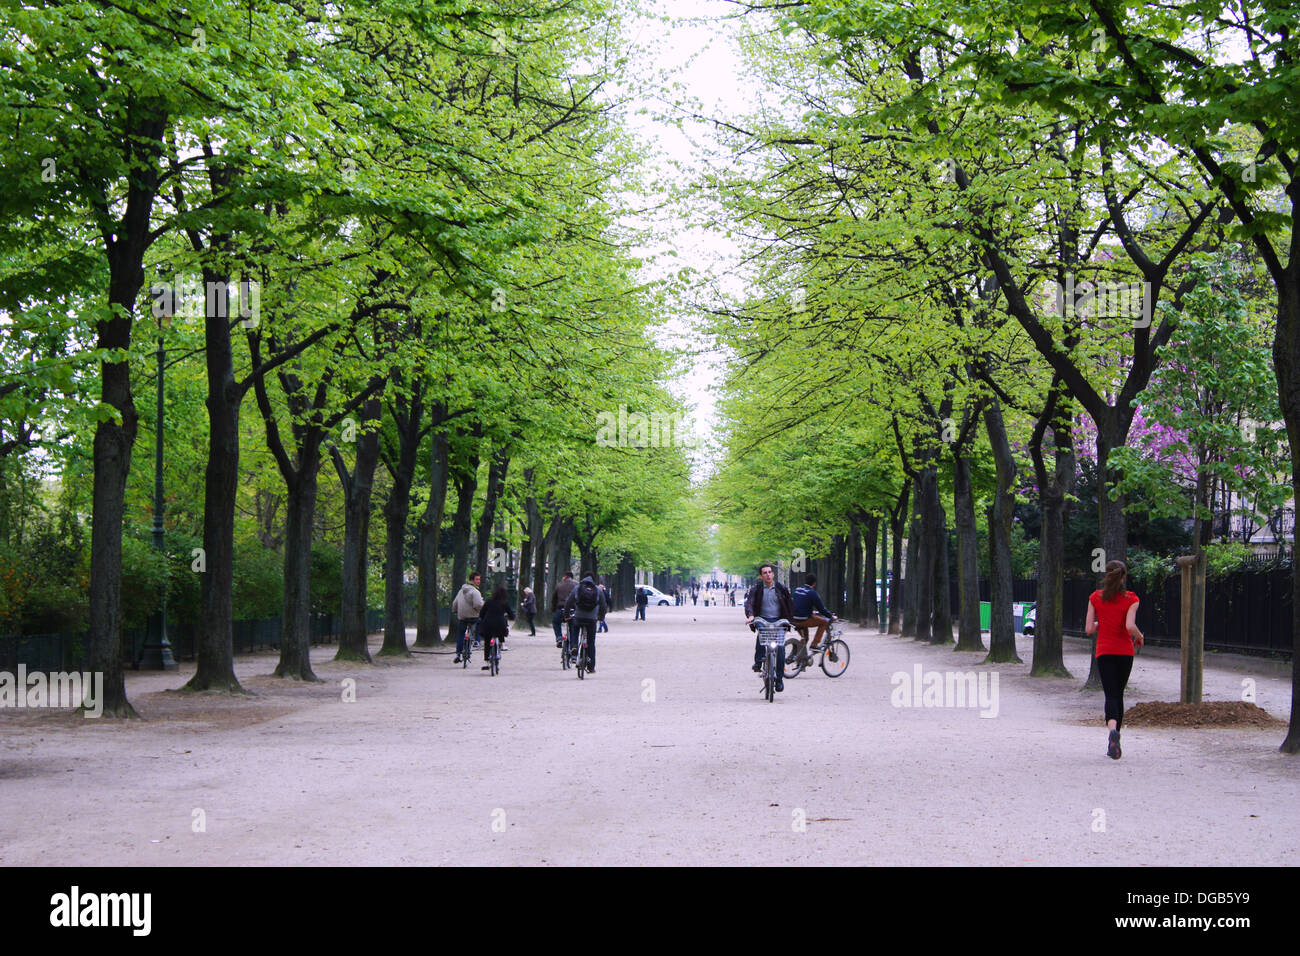 People on bikes in a park in Paris, France Stock Photo